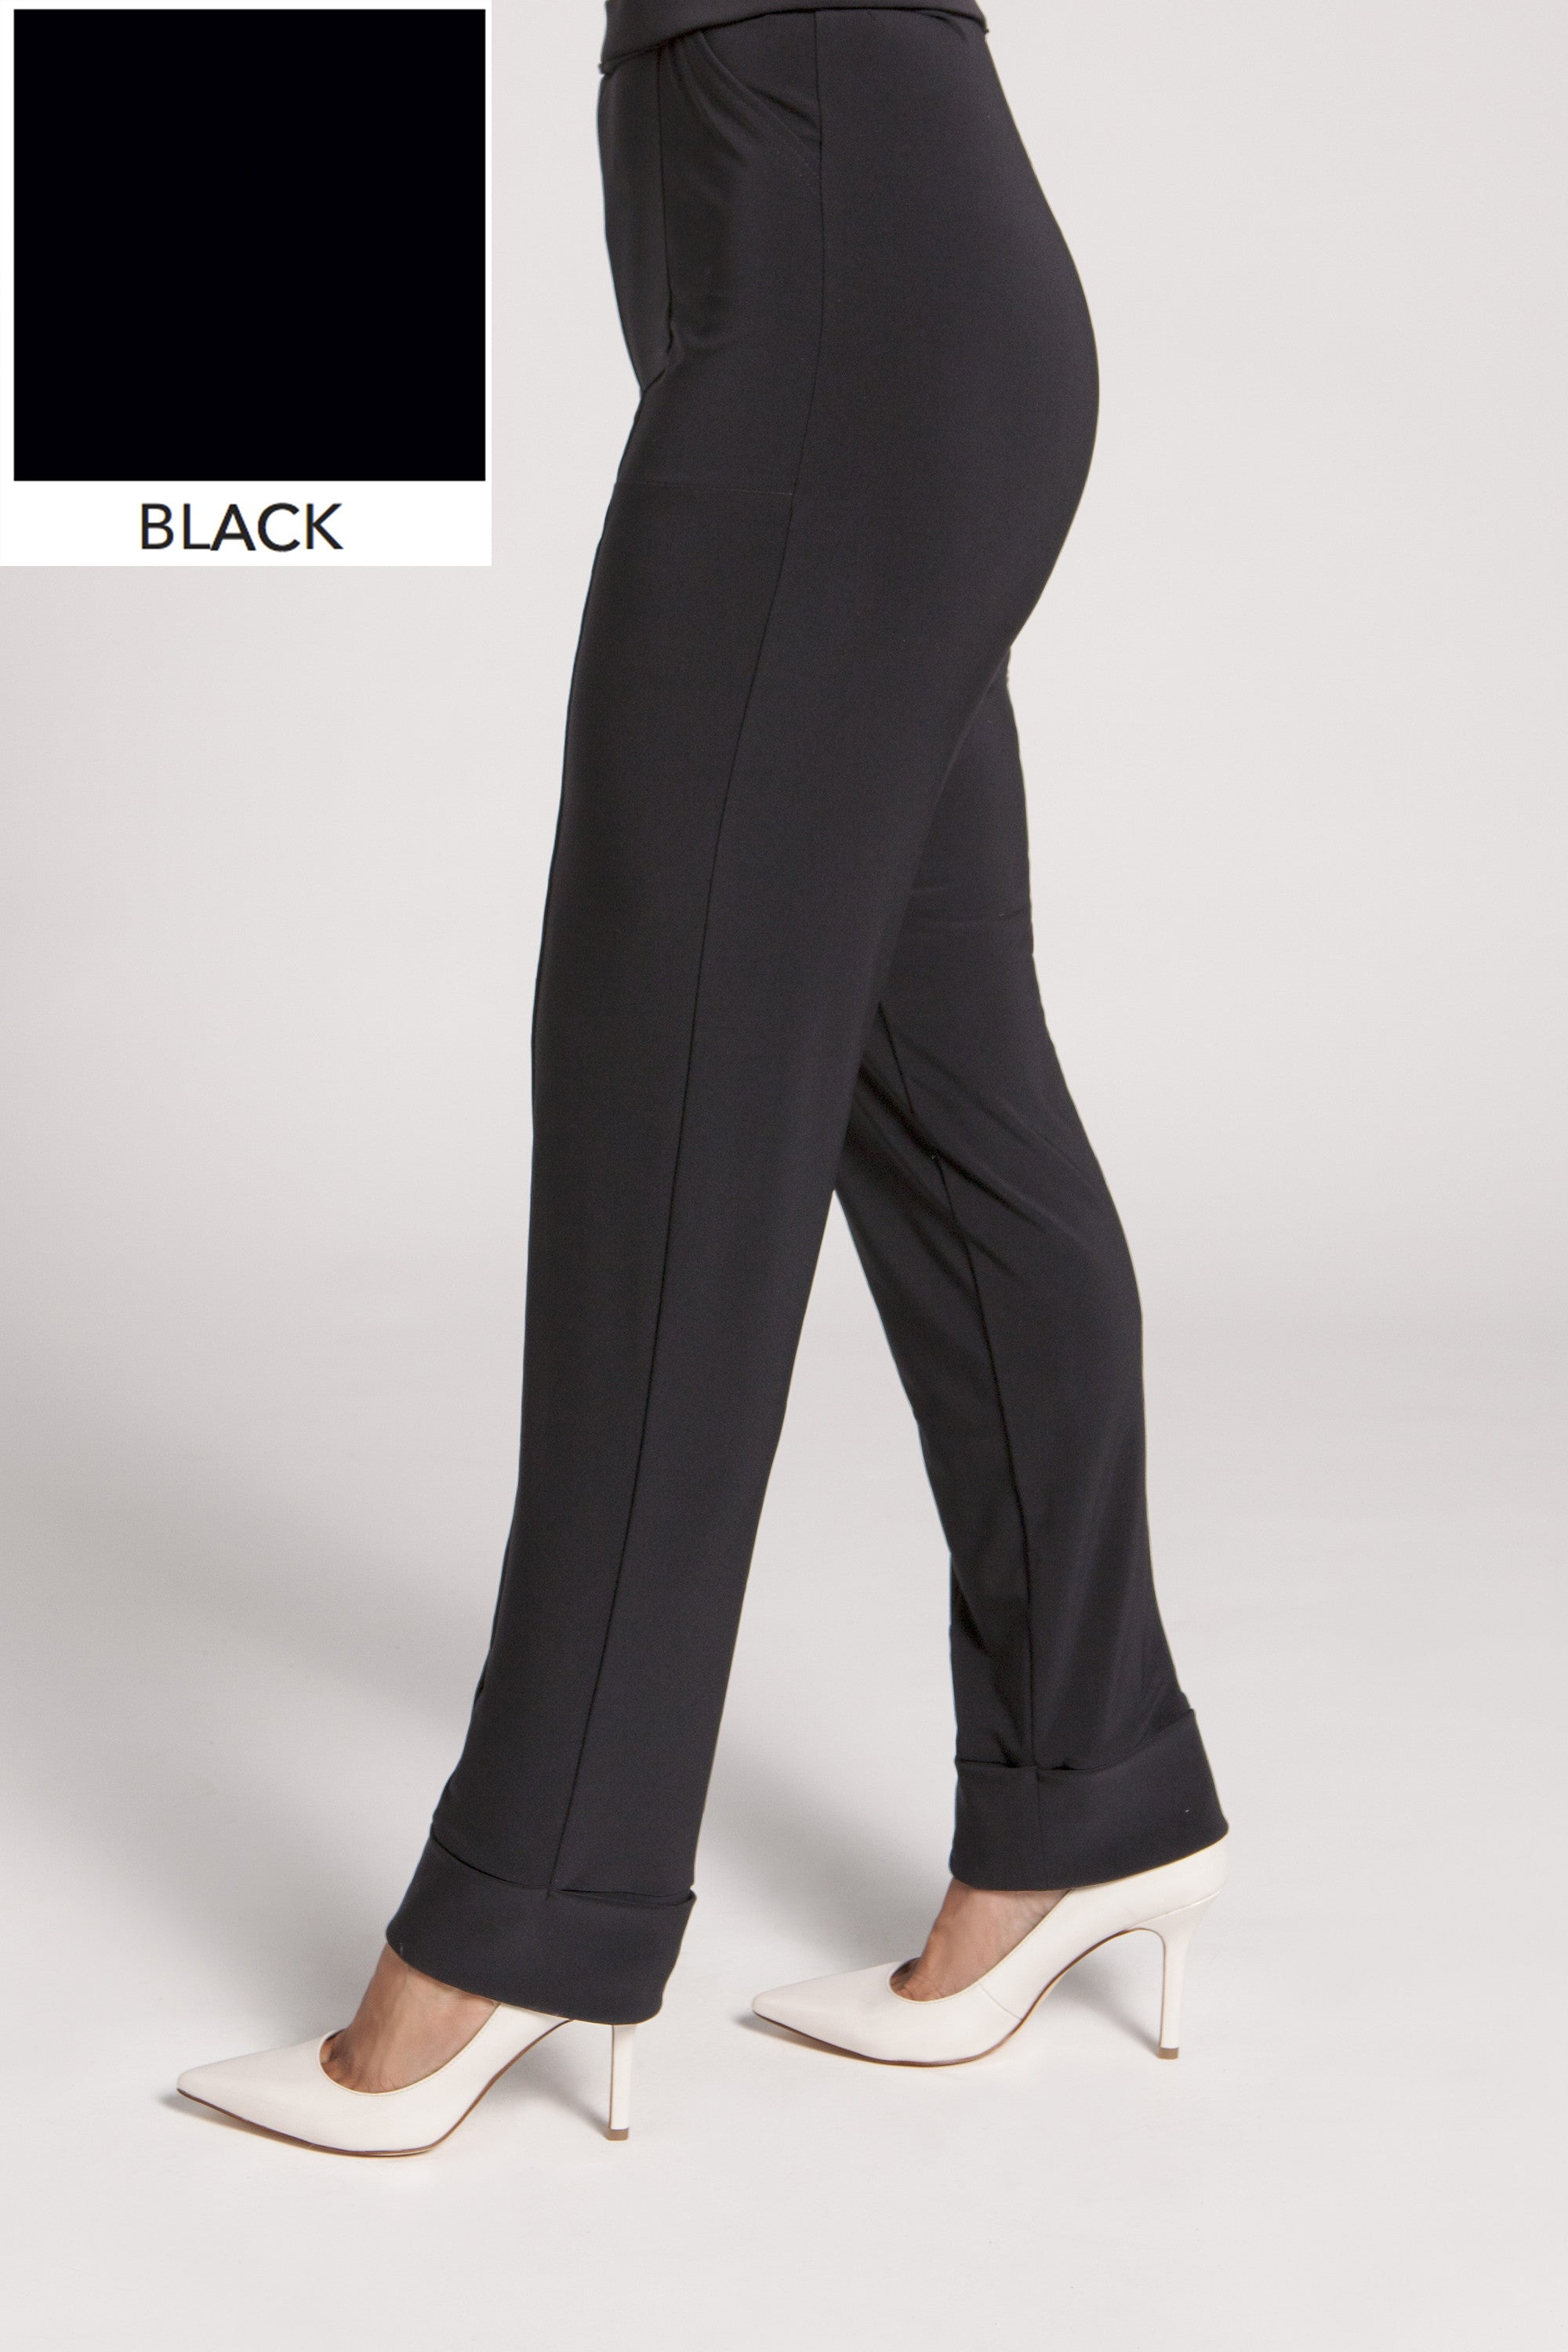 Hepburn Trouser - Black